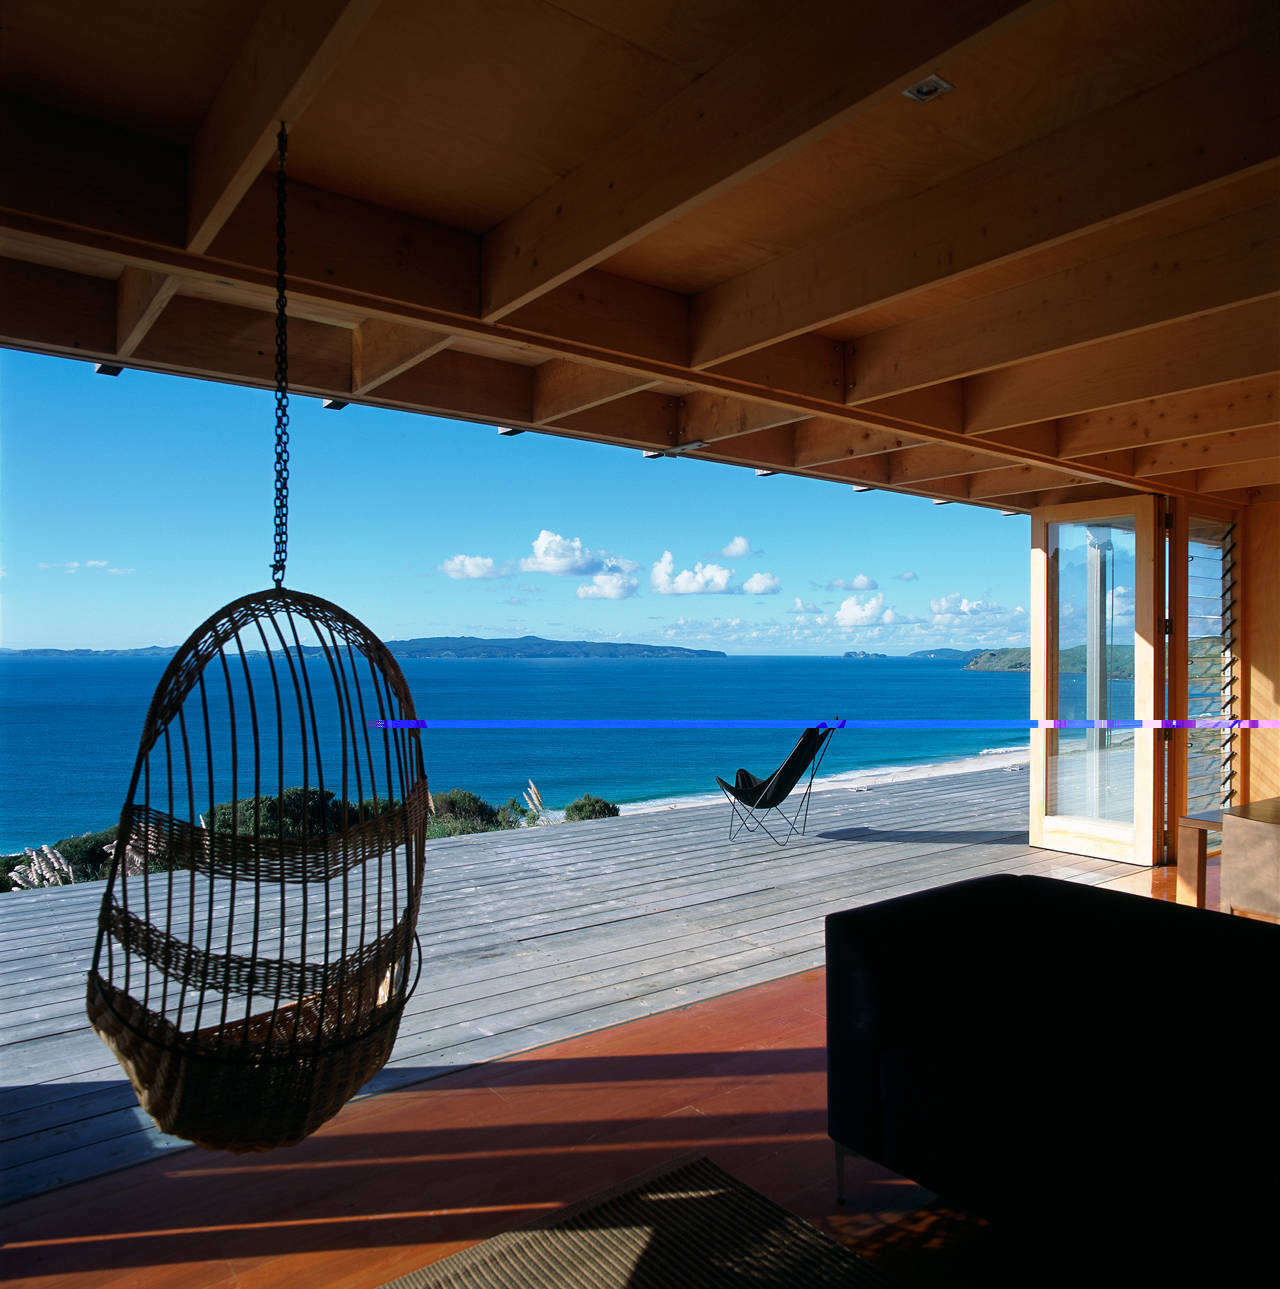 Shipping container homes crosson clarke carnachan for Coastal home designs nz